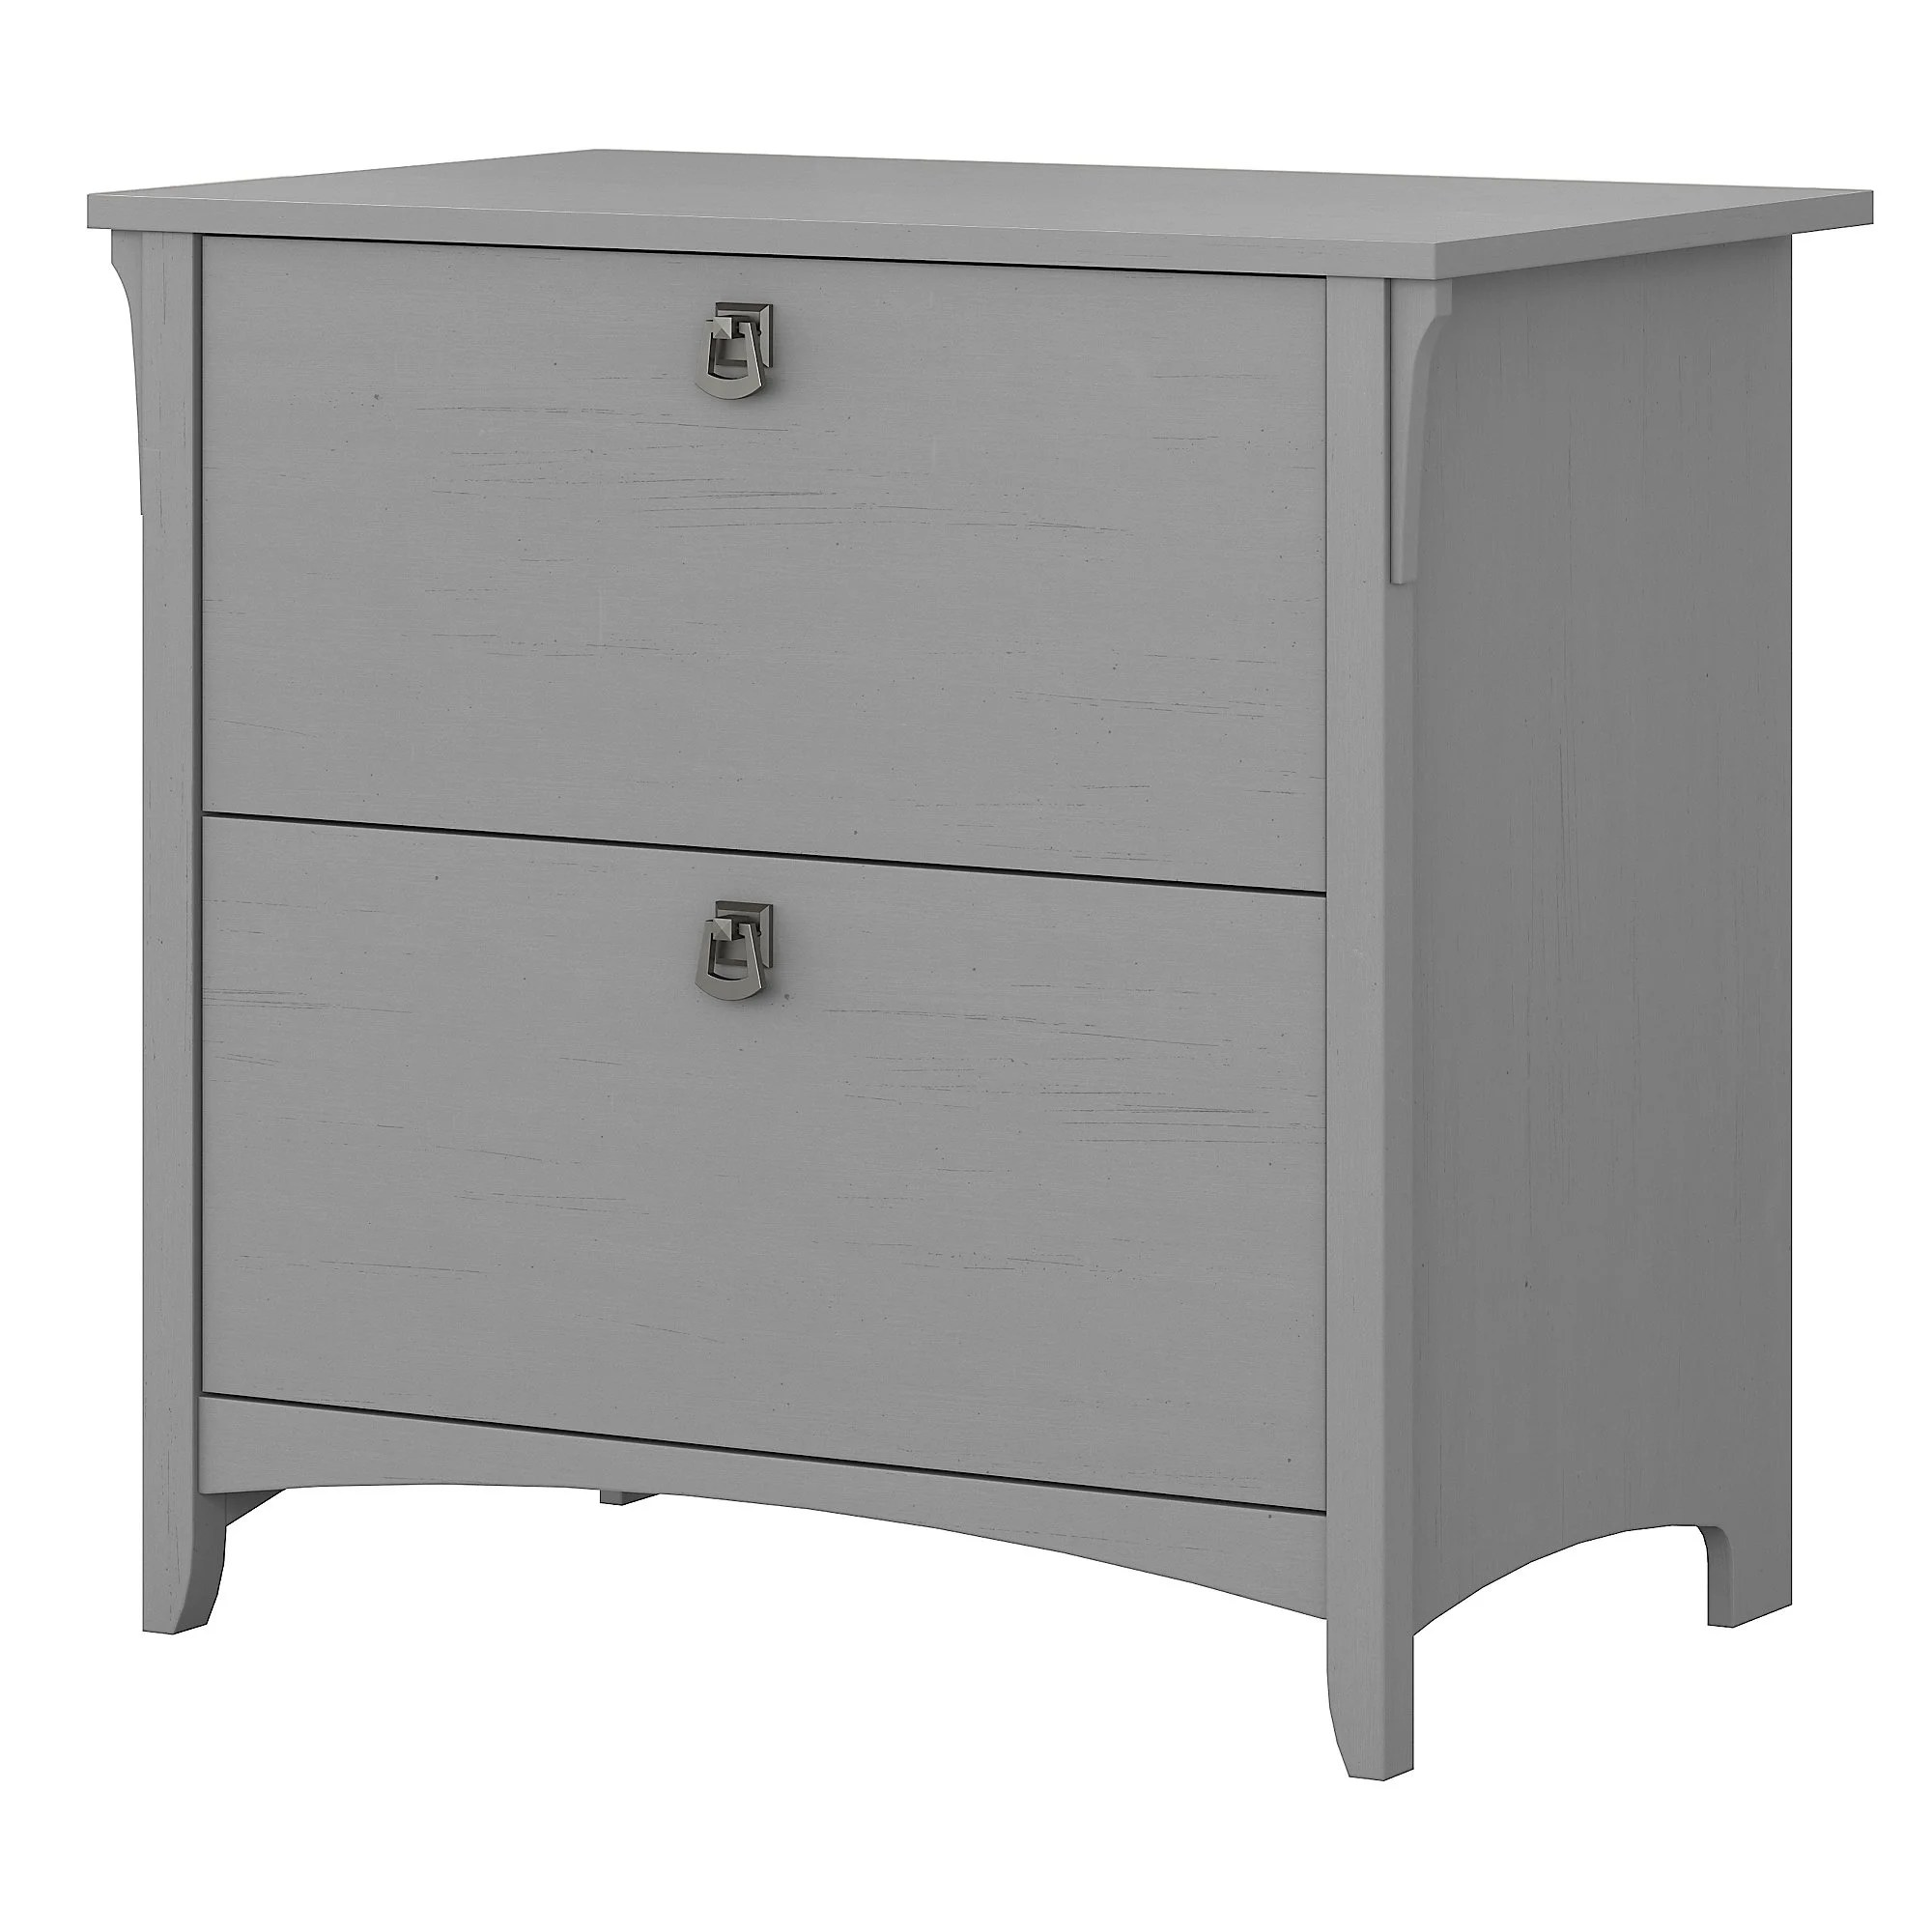 3 Drawer Filing Cabinet Vertical Filing Cabinets Lateral